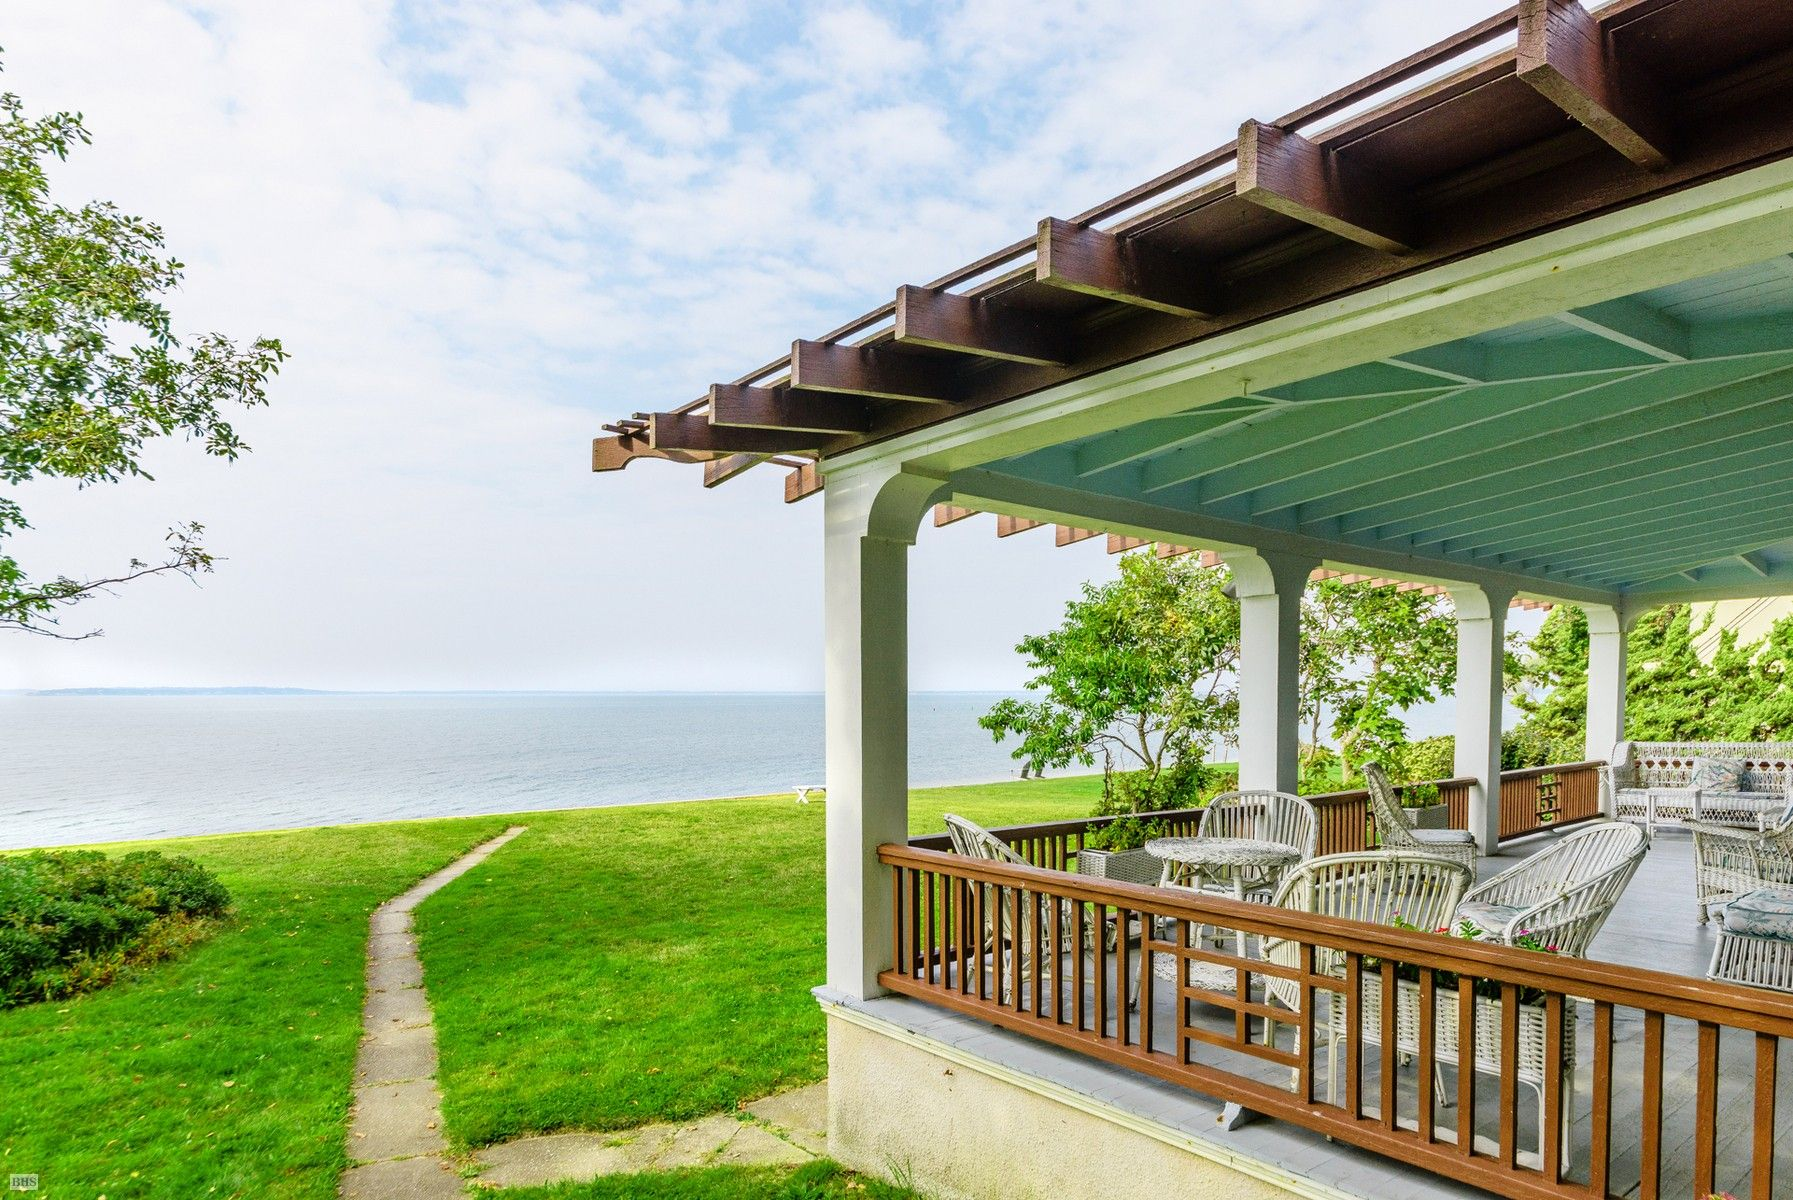 139 Edgemere Dr Southampton Ny 4 350 000 Web 32838 Luxury Real Estate Residential Real Estate Edgemere